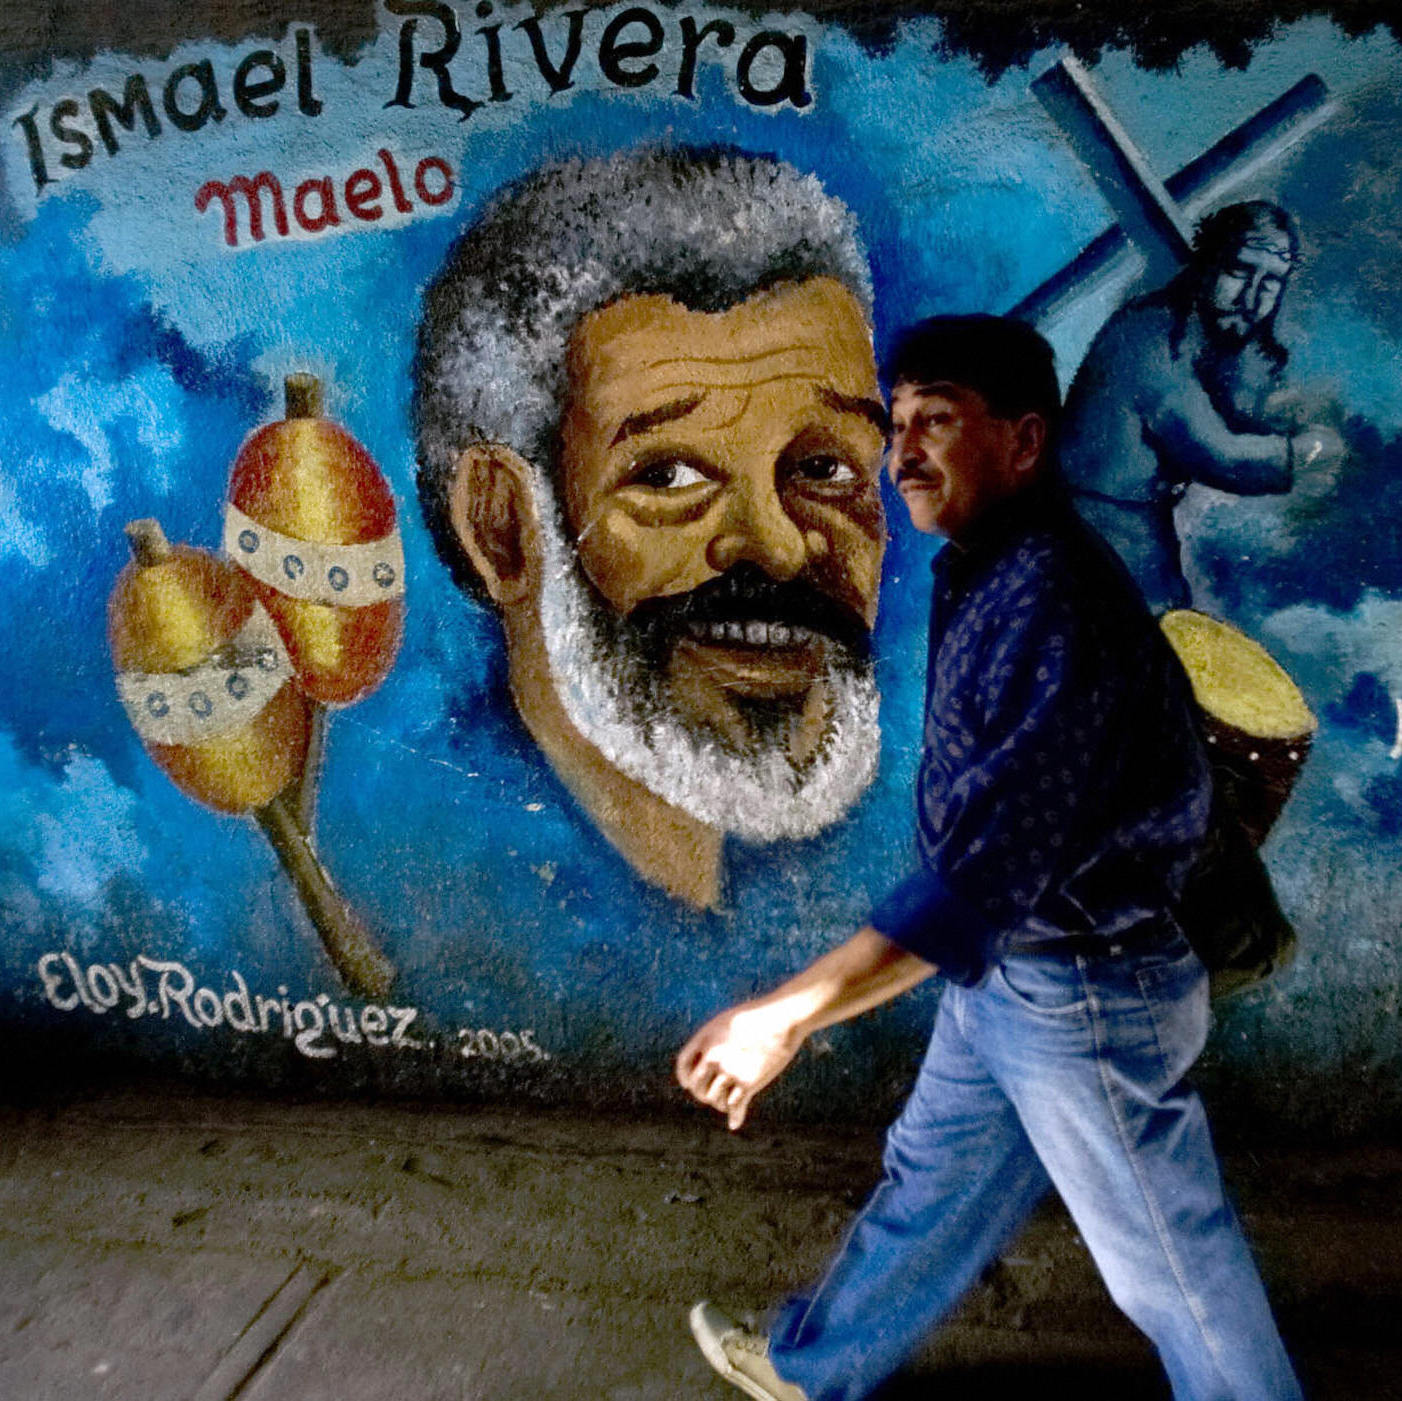 A man walks past a mural of Puerto Rican singer Ismael Rivera in the La Bombilla neighborhood of Petare, eastern Caracas, Venezuela.